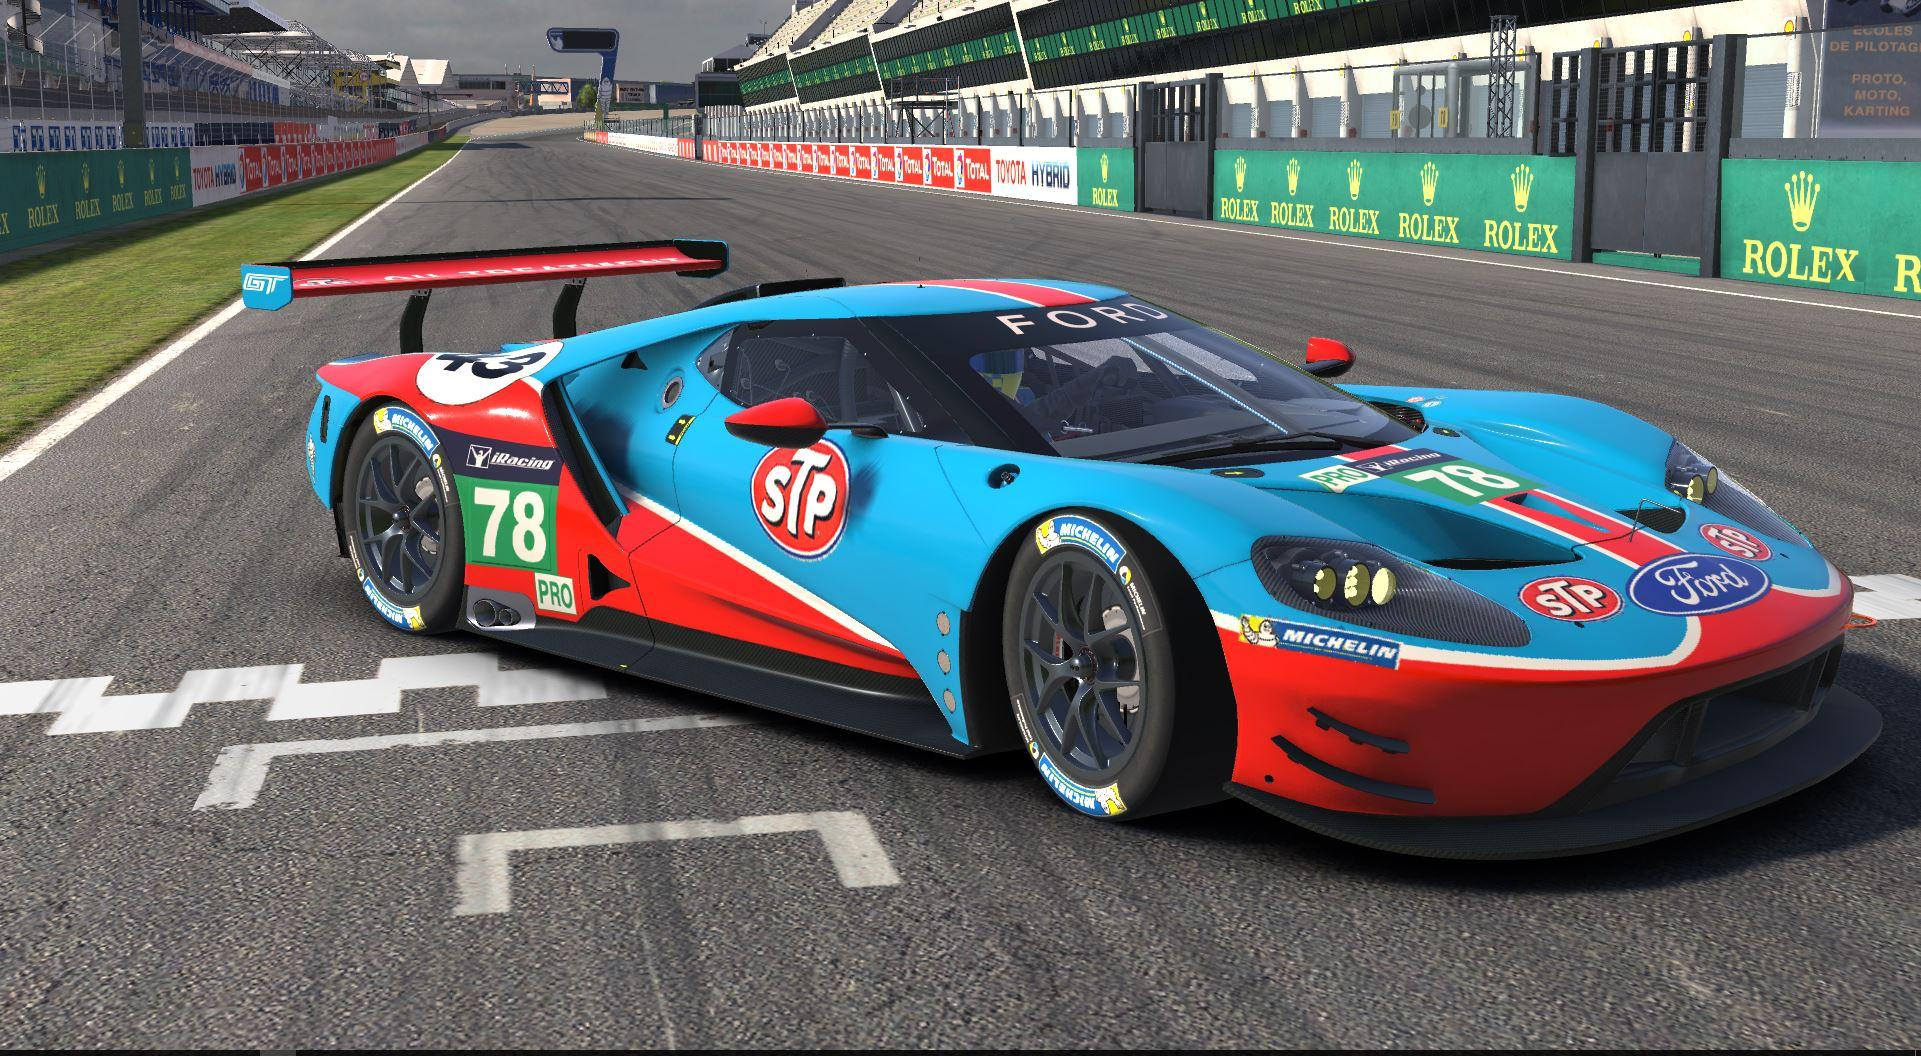 Stp Richard Petty Colors Ford Gt  By Andrew Fawcett Pro